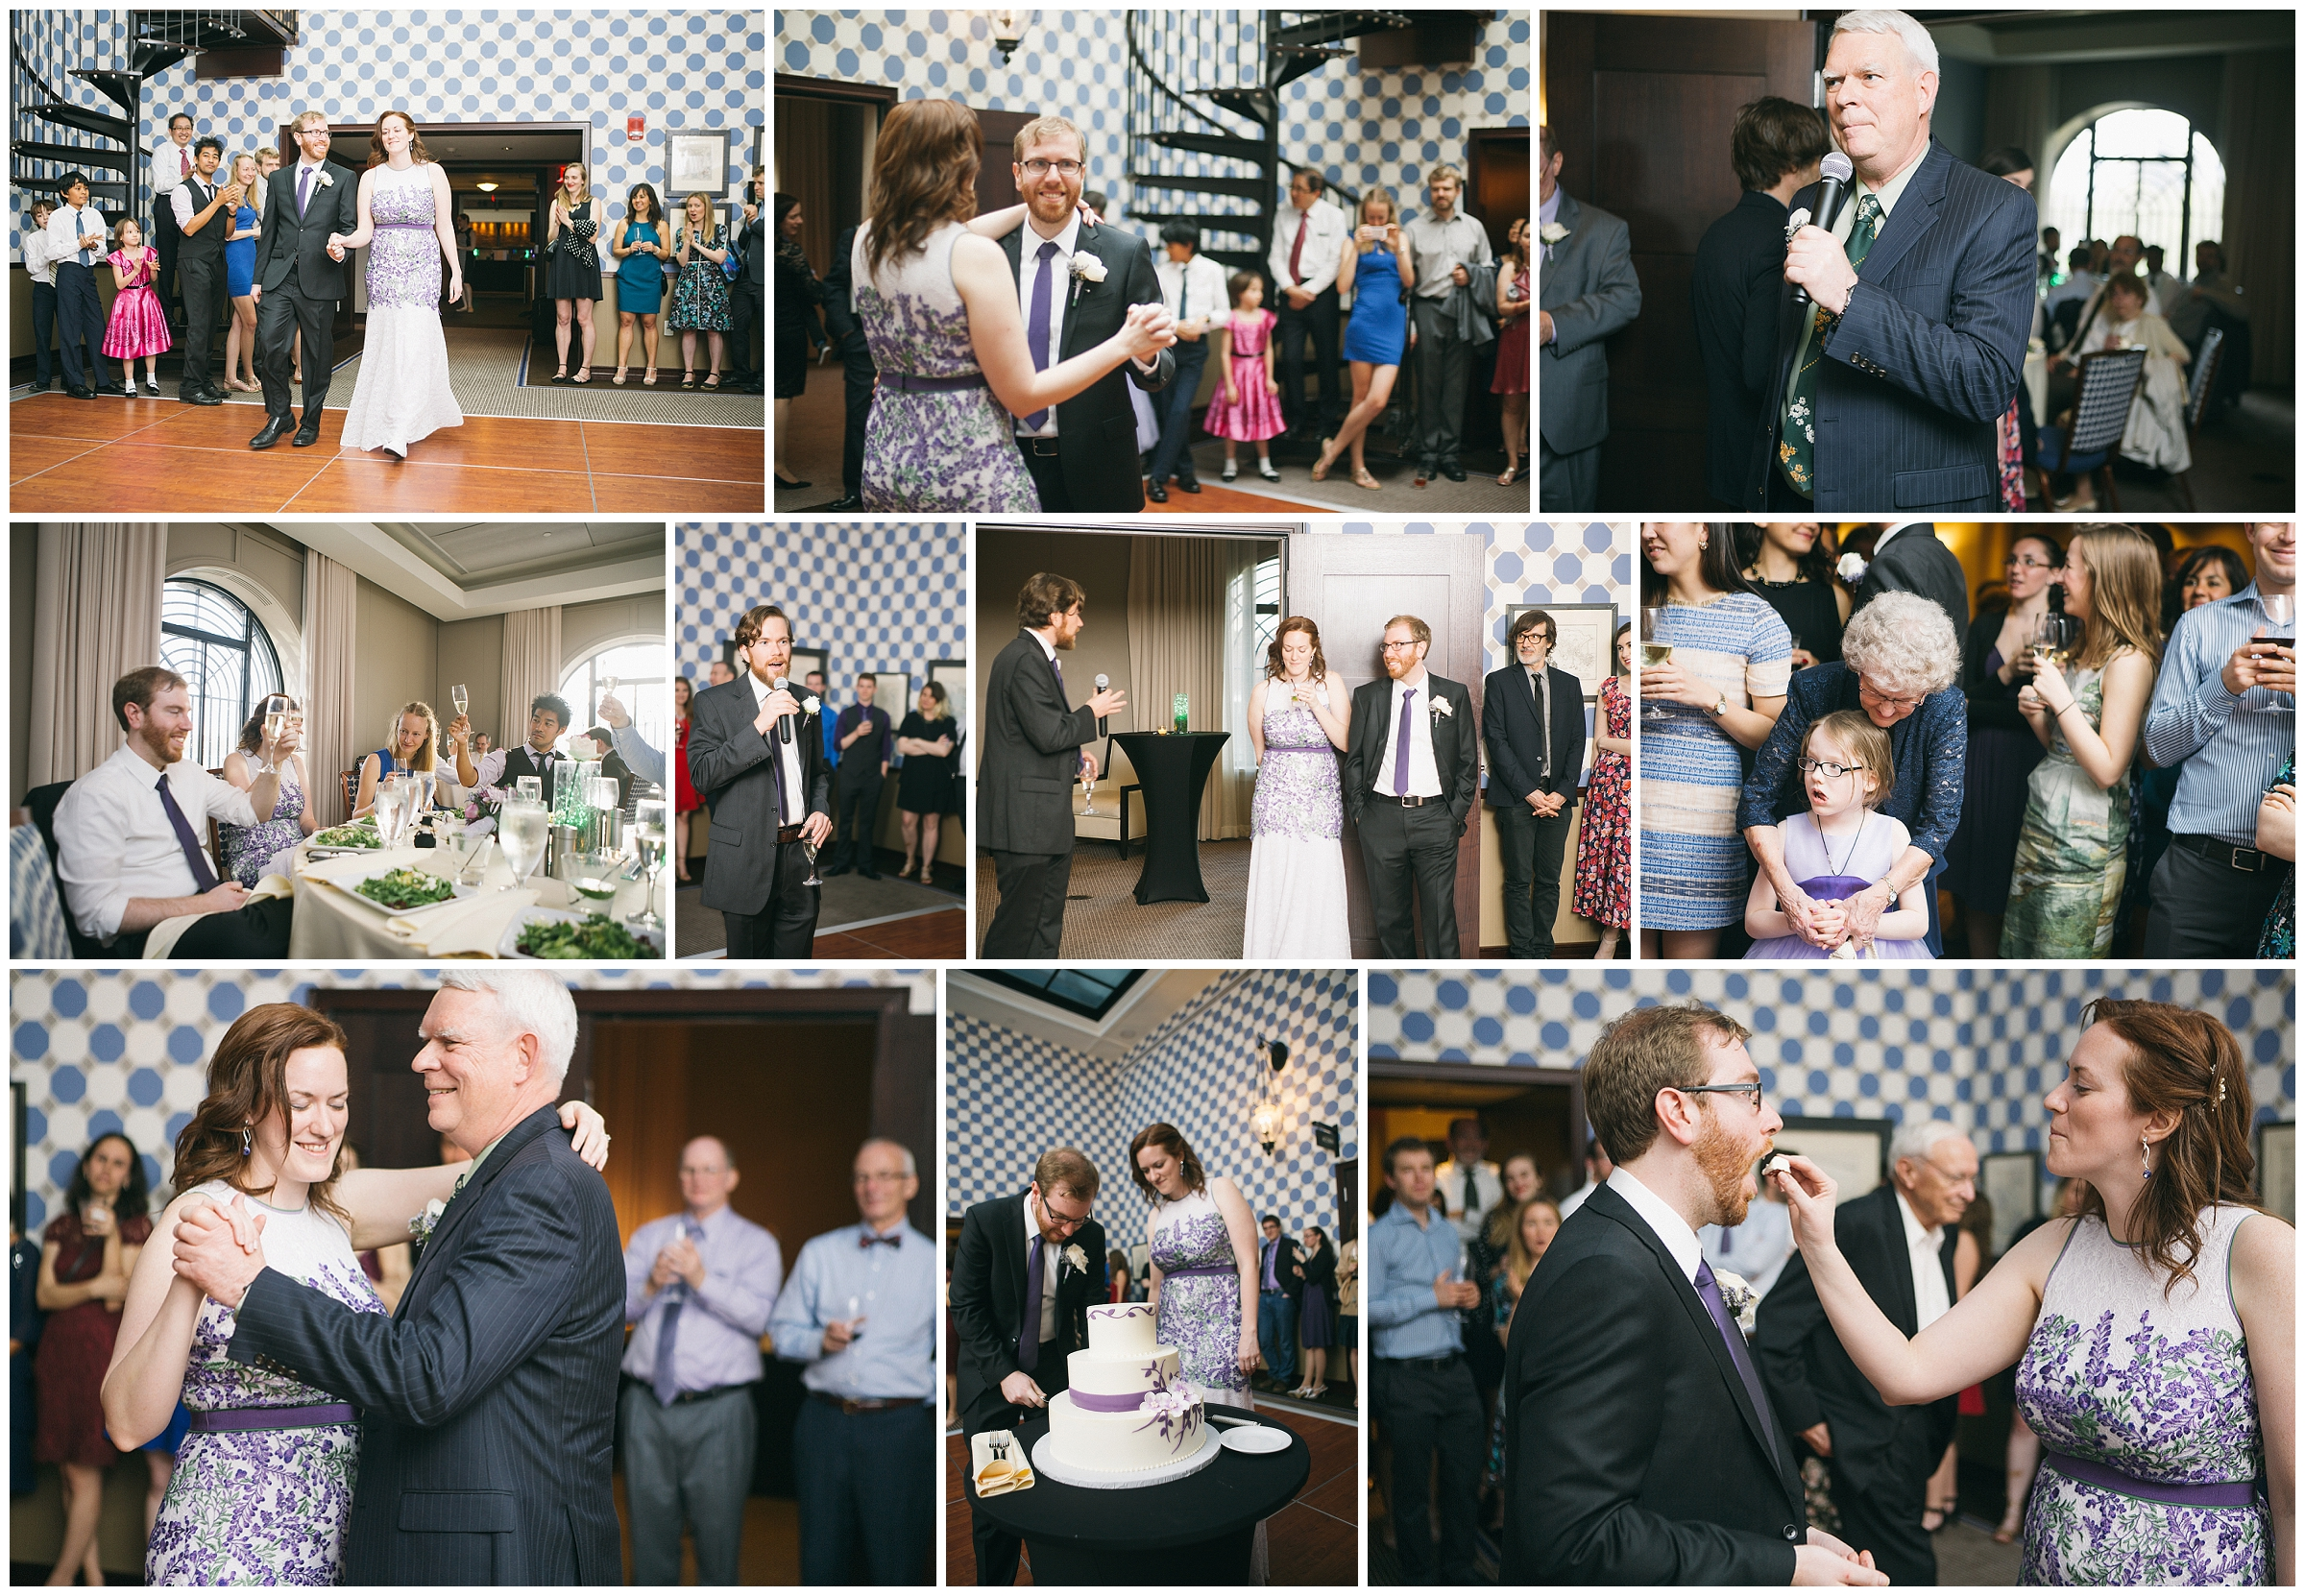 Liberty Hotel Boston Wedding Photography - Pictures from wedding reception including bride and groom's first dance, toasts as well as cake cutting. Bride feeds groom cake by Ryan Richardson Photography